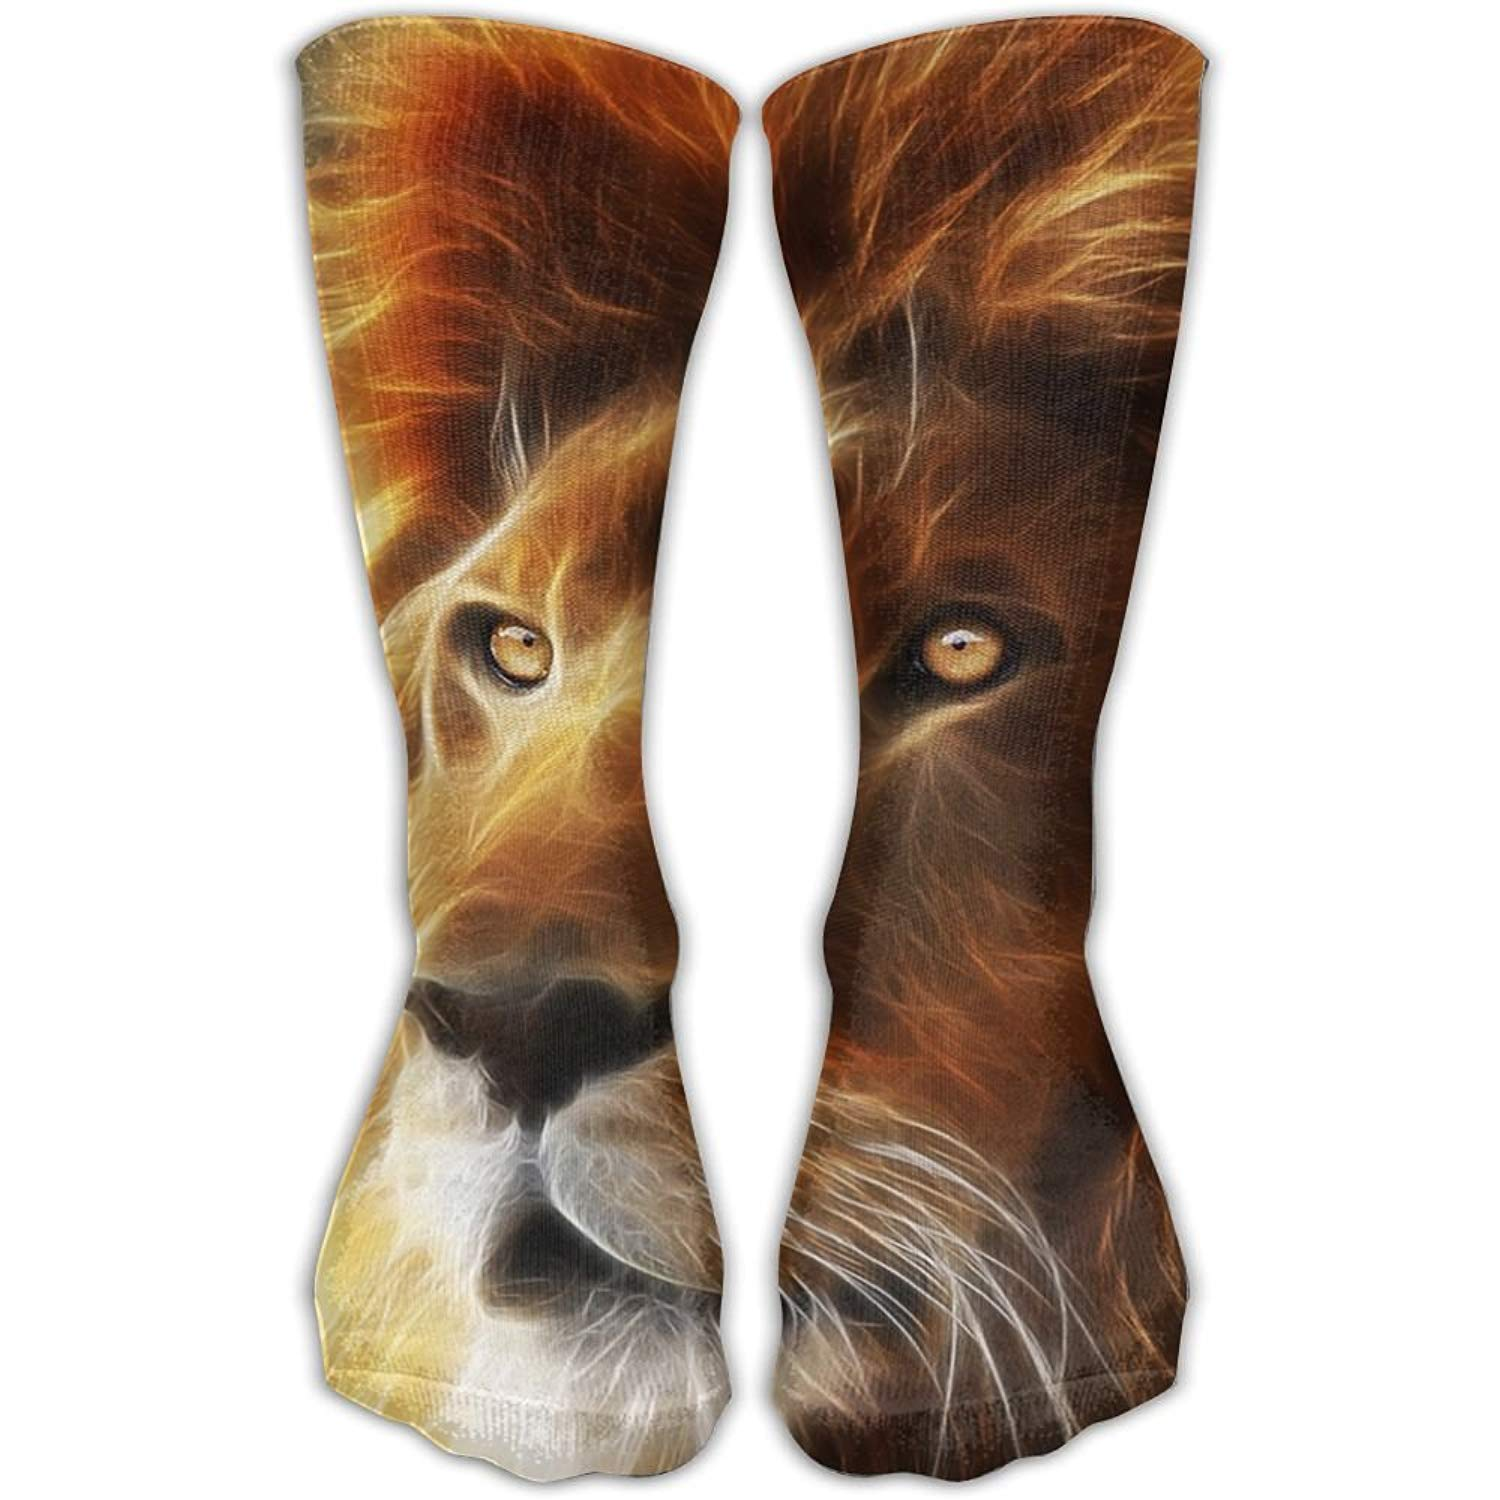 Unisex Fire Lion Galaxy Fashion Crew Sock Athletic Ankle Dress Sock One Size shower curtain liner